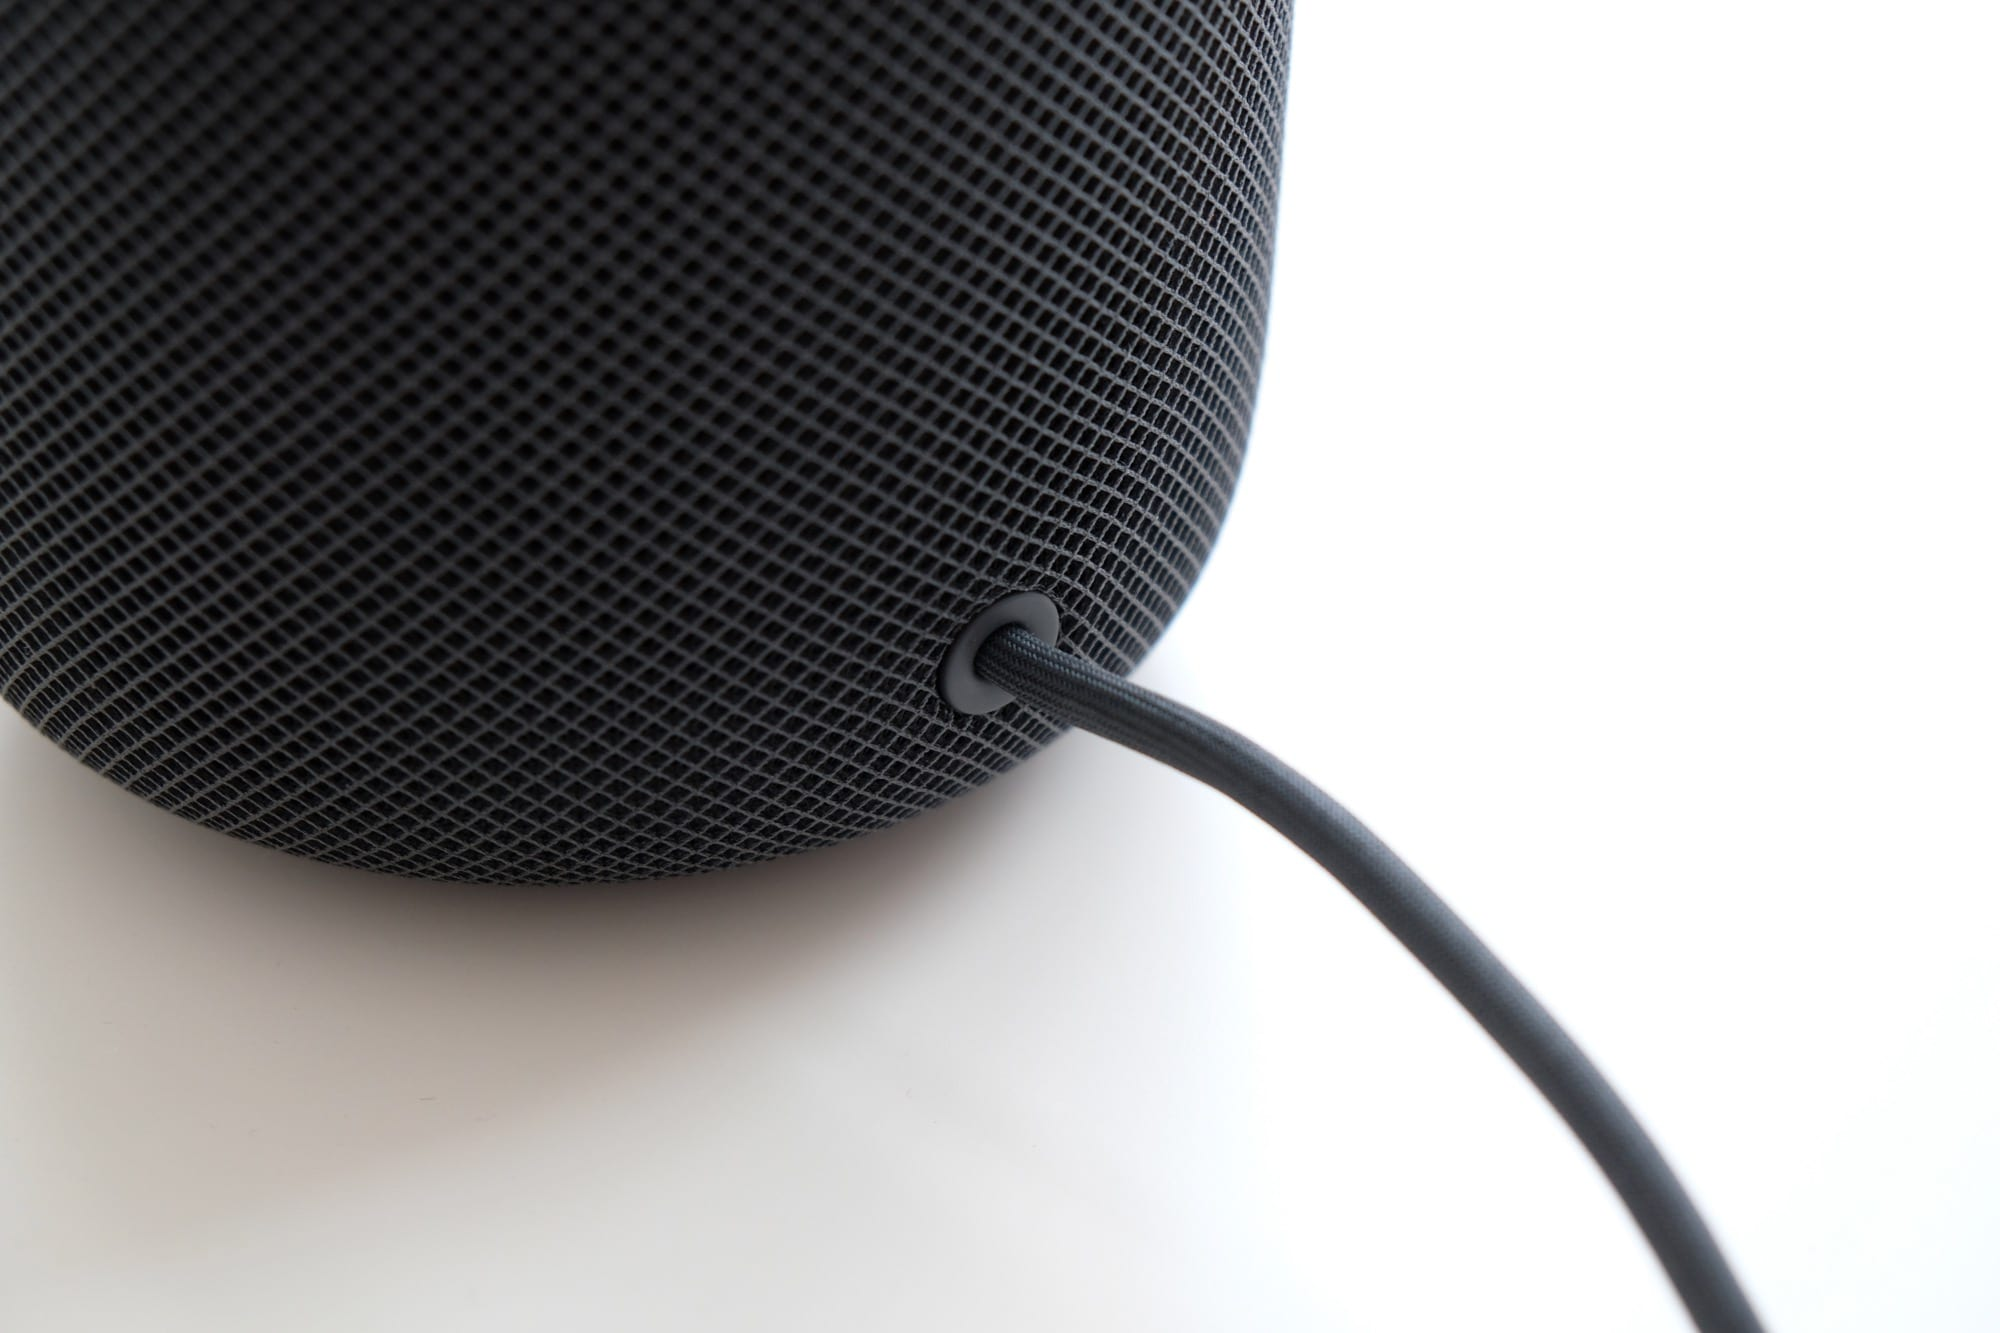 apple homepod recenzia3 - Recenzia: Apple HomePod